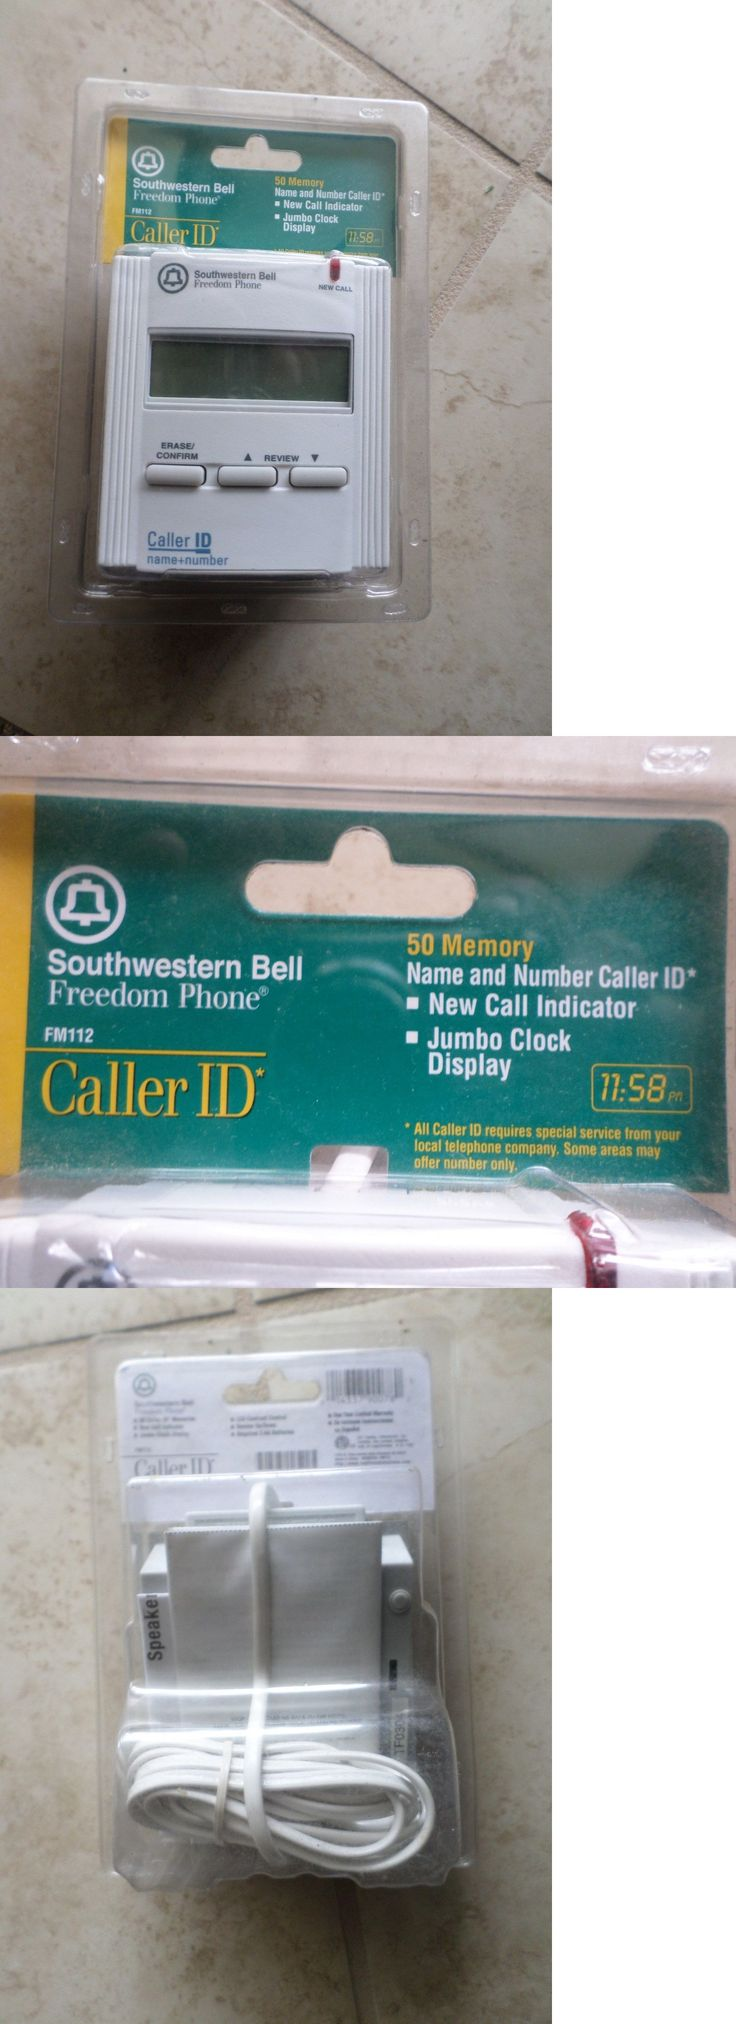 Caller ID Devices: Southwestern Bell Fm112 Caller Id Unit (White) New In Package -> BUY IT NOW ONLY: $30 on eBay!